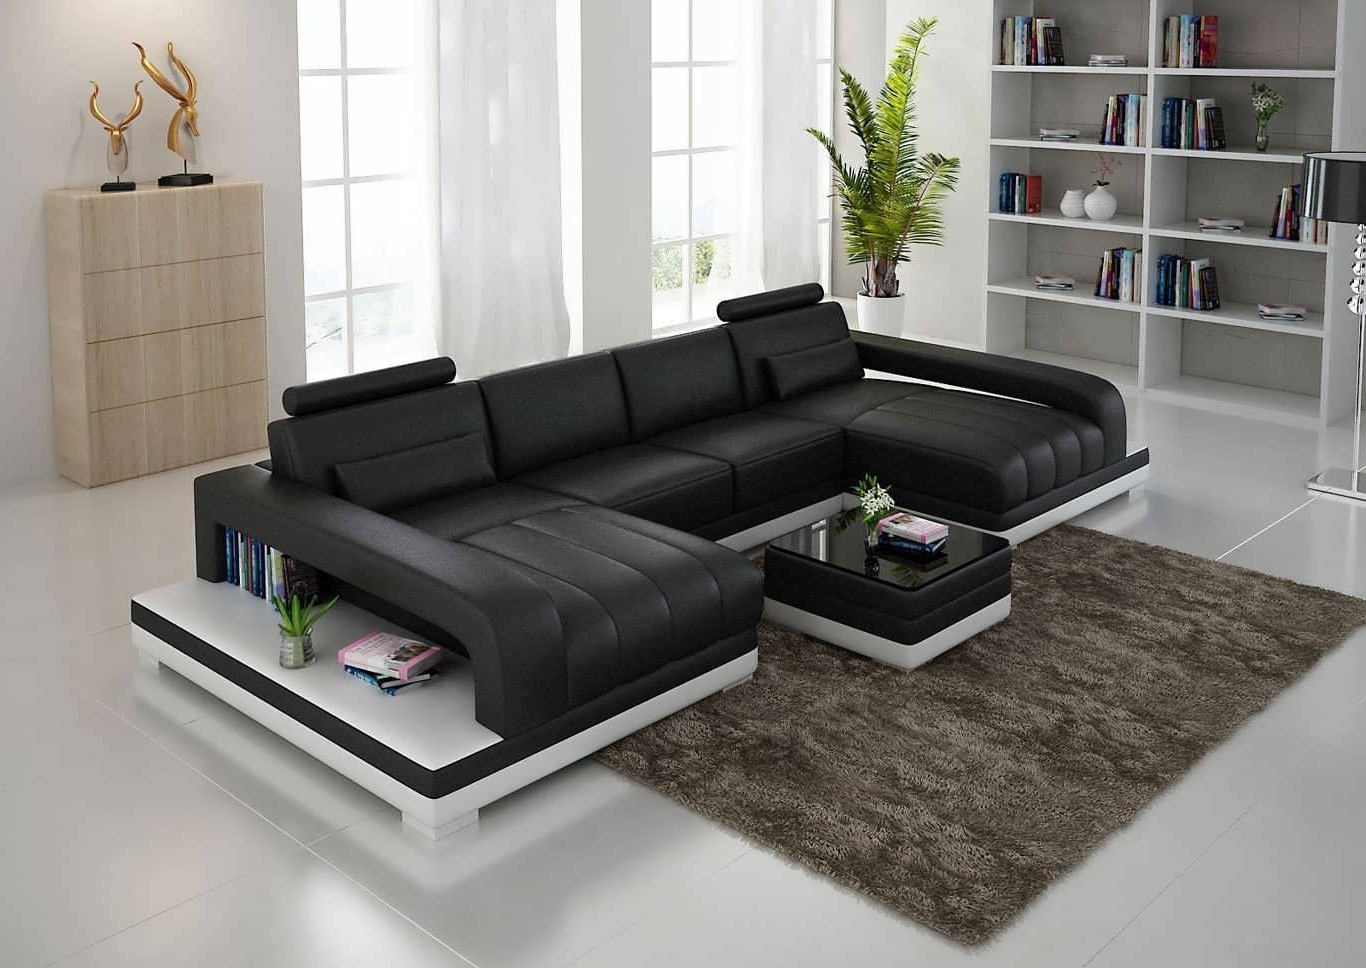 Double Chaise Couches In 2018 Sofa : Corner Chaise Sofa Round Sofa L Sectional Couch Deep (View 2 of 15)